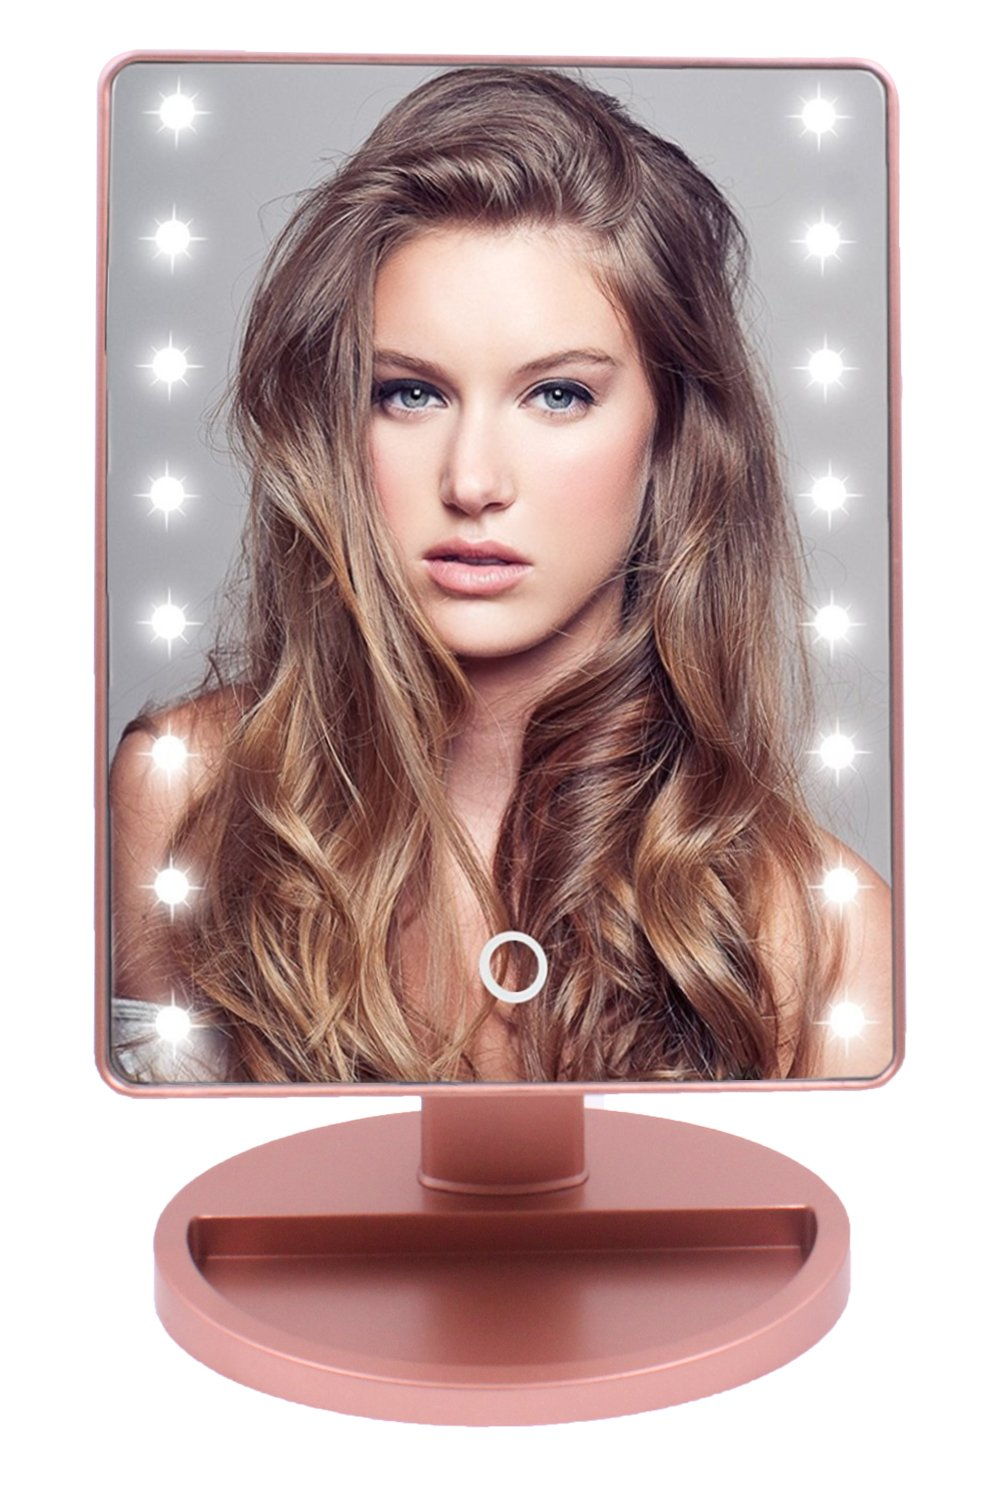 JanYoo Lighted Makeup Mirror for Women,LED Vanity Lights Touch Screen 180°Adjustable Rotation USB Charging(Rose Gold) by JanYoo